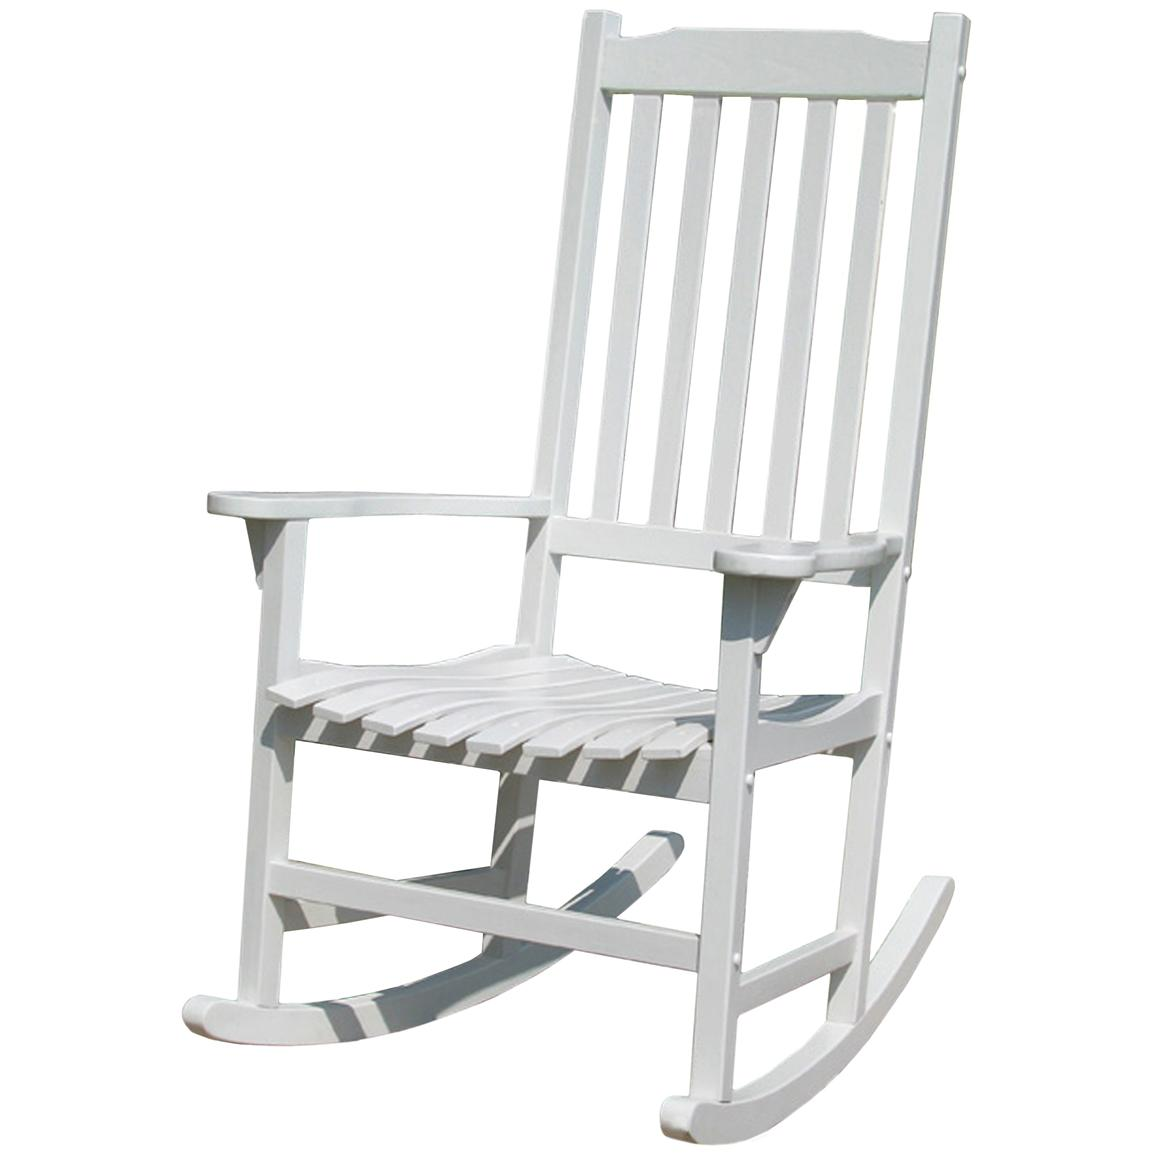 Overstock Rocking Chairs Merry Products Painted Traditional Rocking Chair 588449